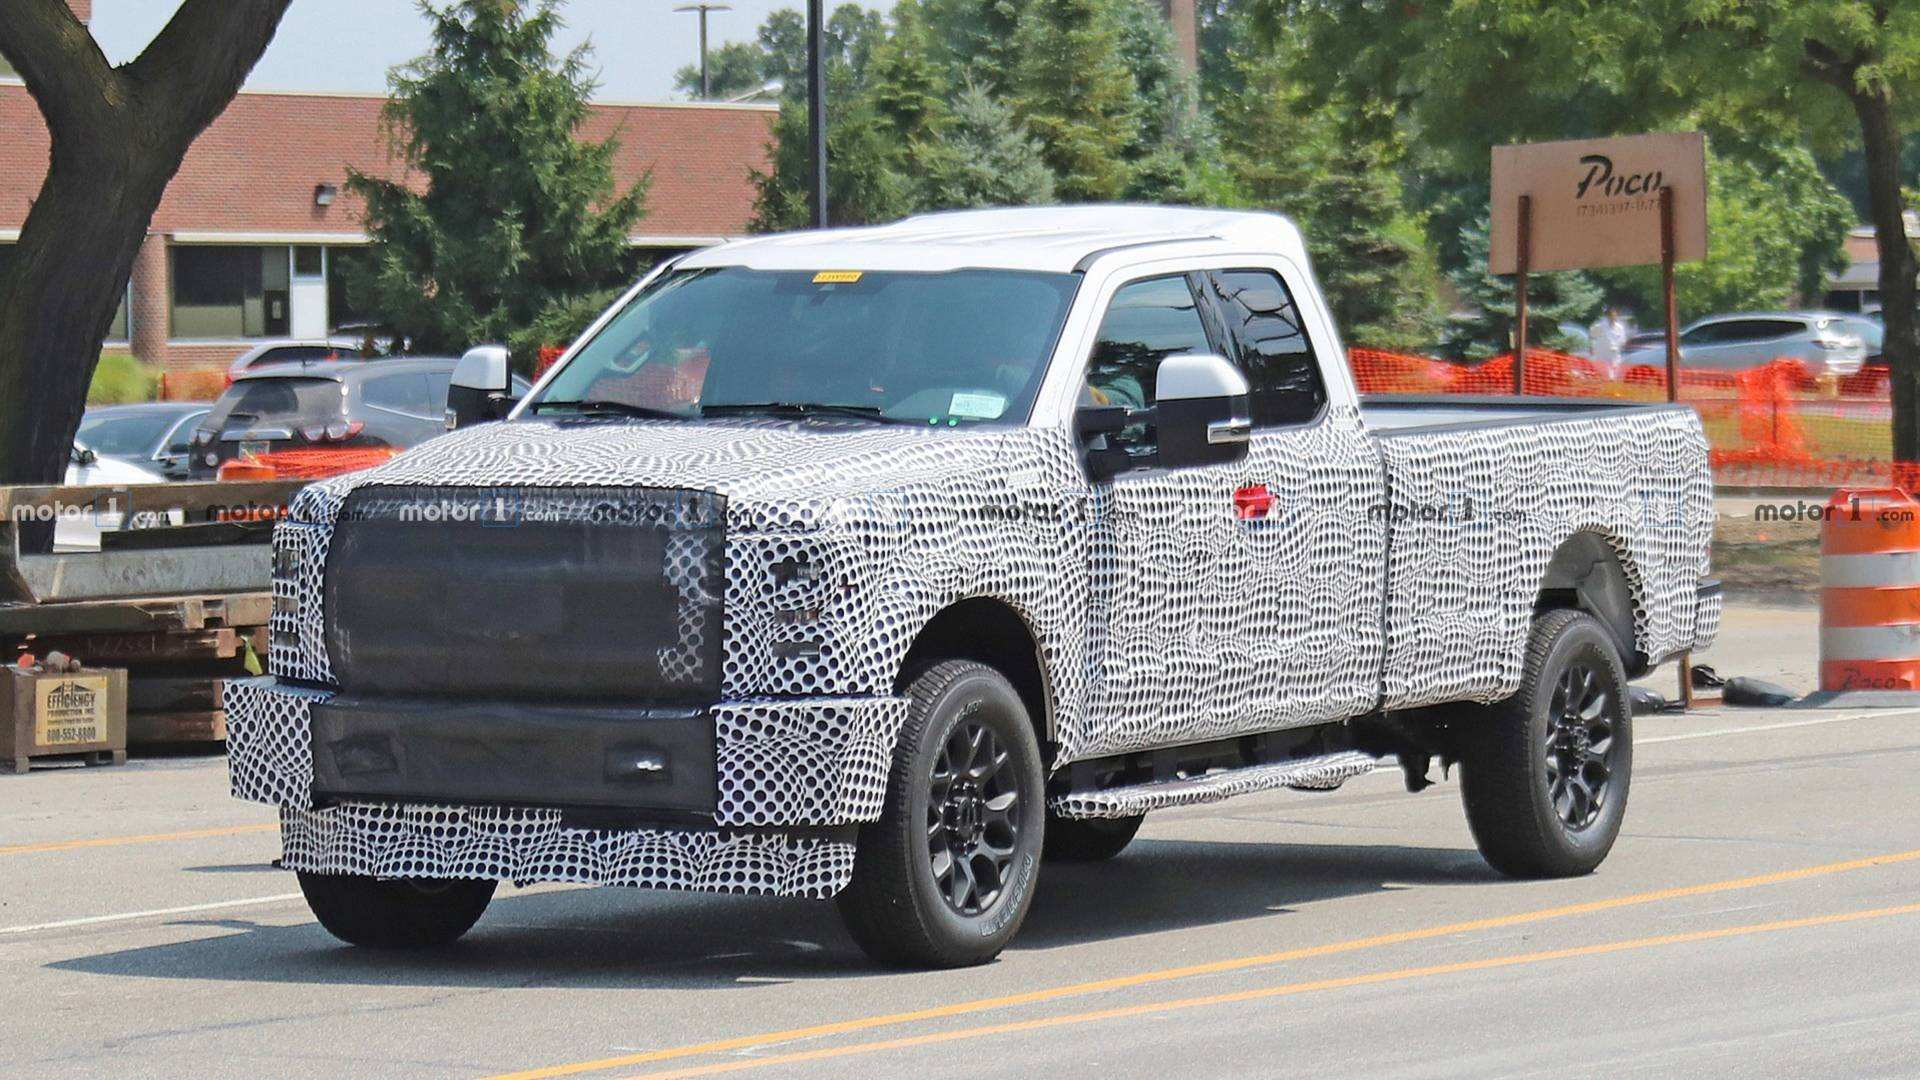 87 New 2020 Spy Shots Ford F350 Diesel Reviews with 2020 Spy Shots Ford F350 Diesel